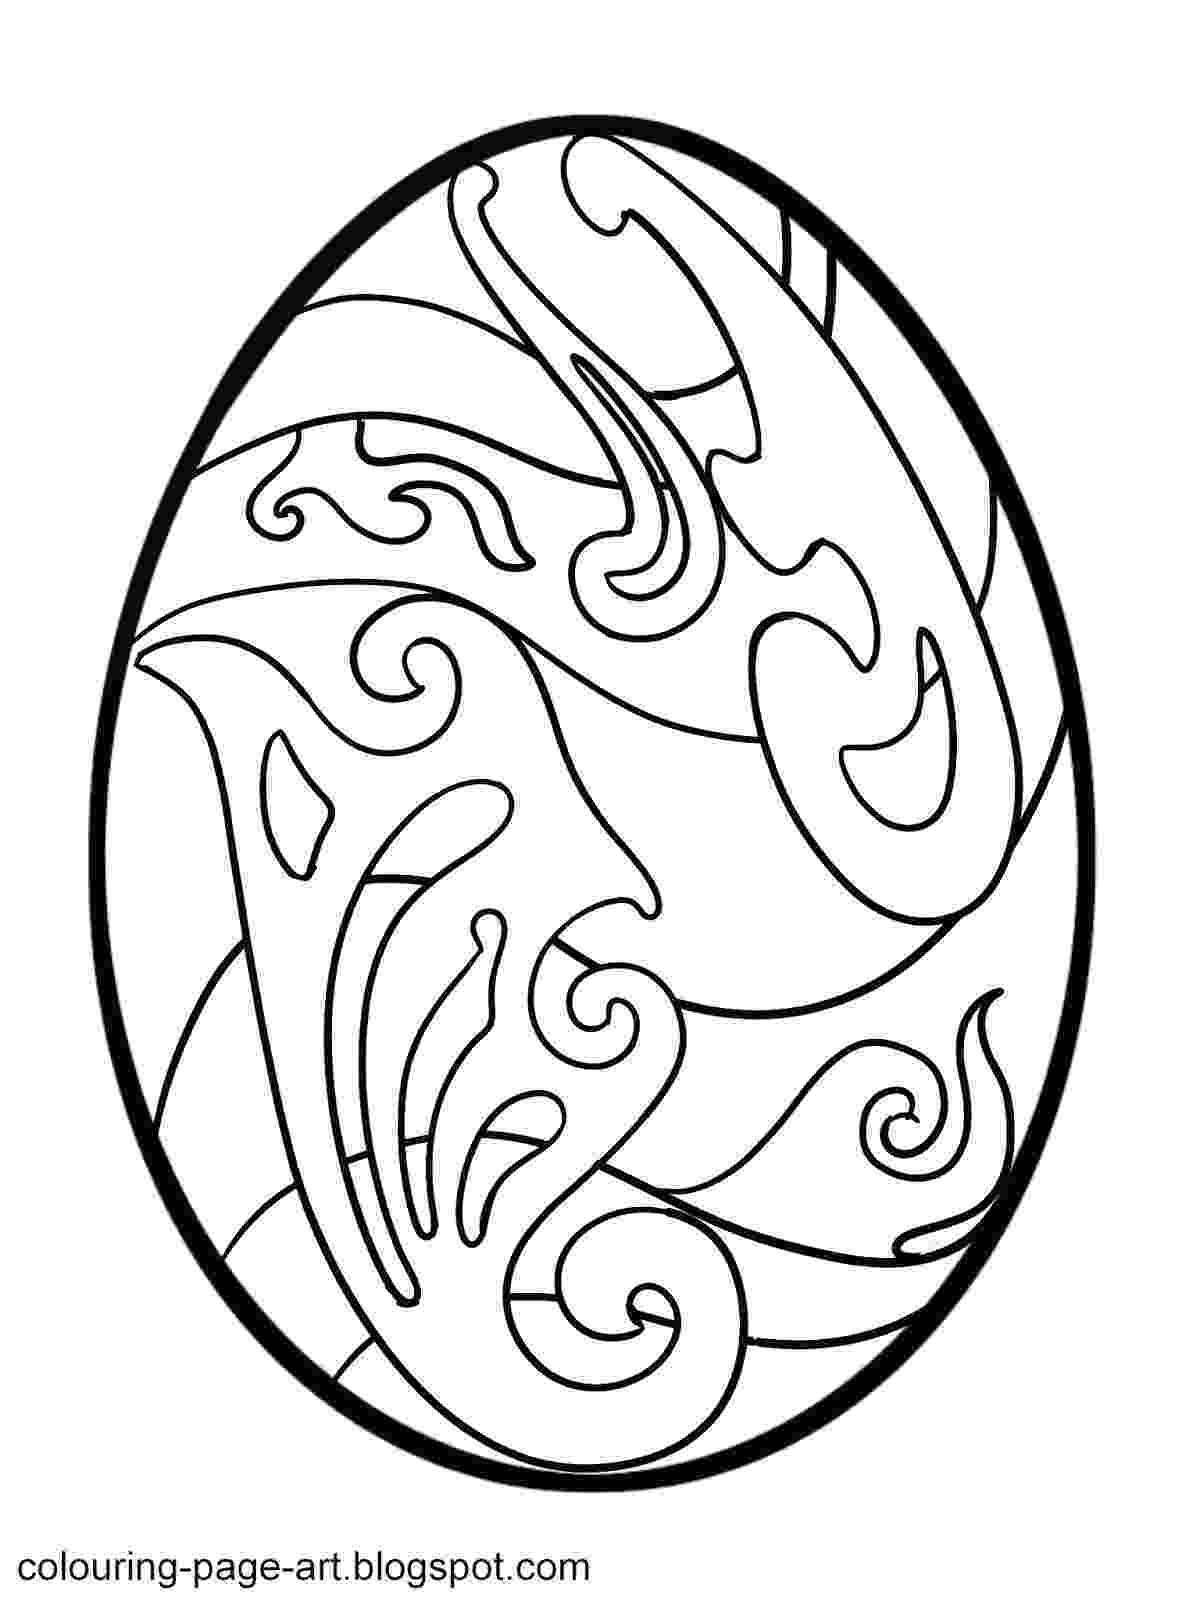 egg coloring pages easter egg printable colouring pages hubpages pages egg coloring 1 1